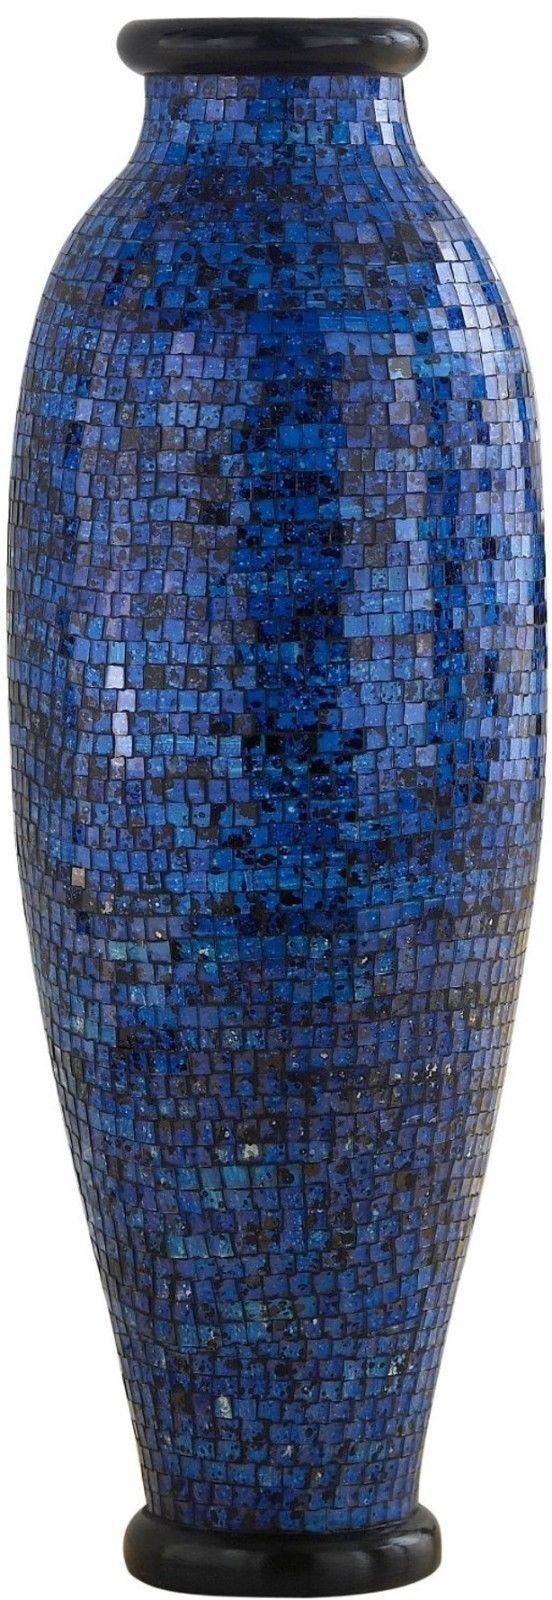 Danannstore Tall Flower Floor Vase Art Blue Decor Mosaic